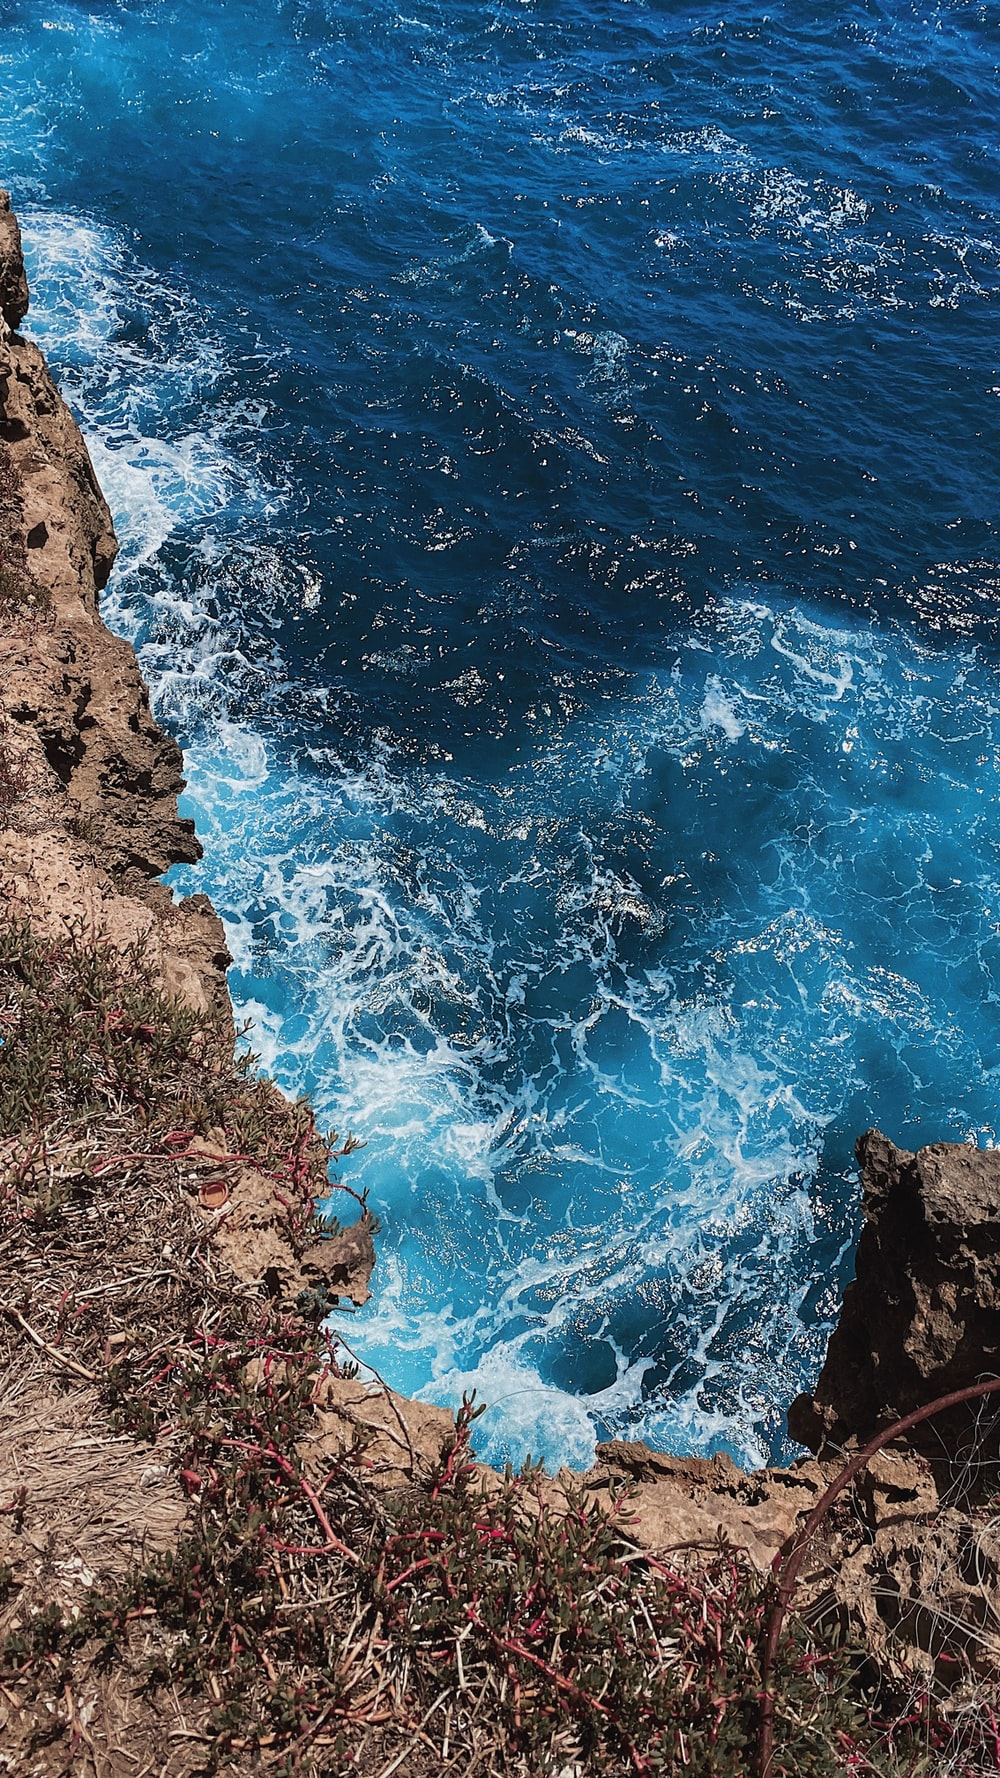 blue sea waves on brown rocky shore during daytime